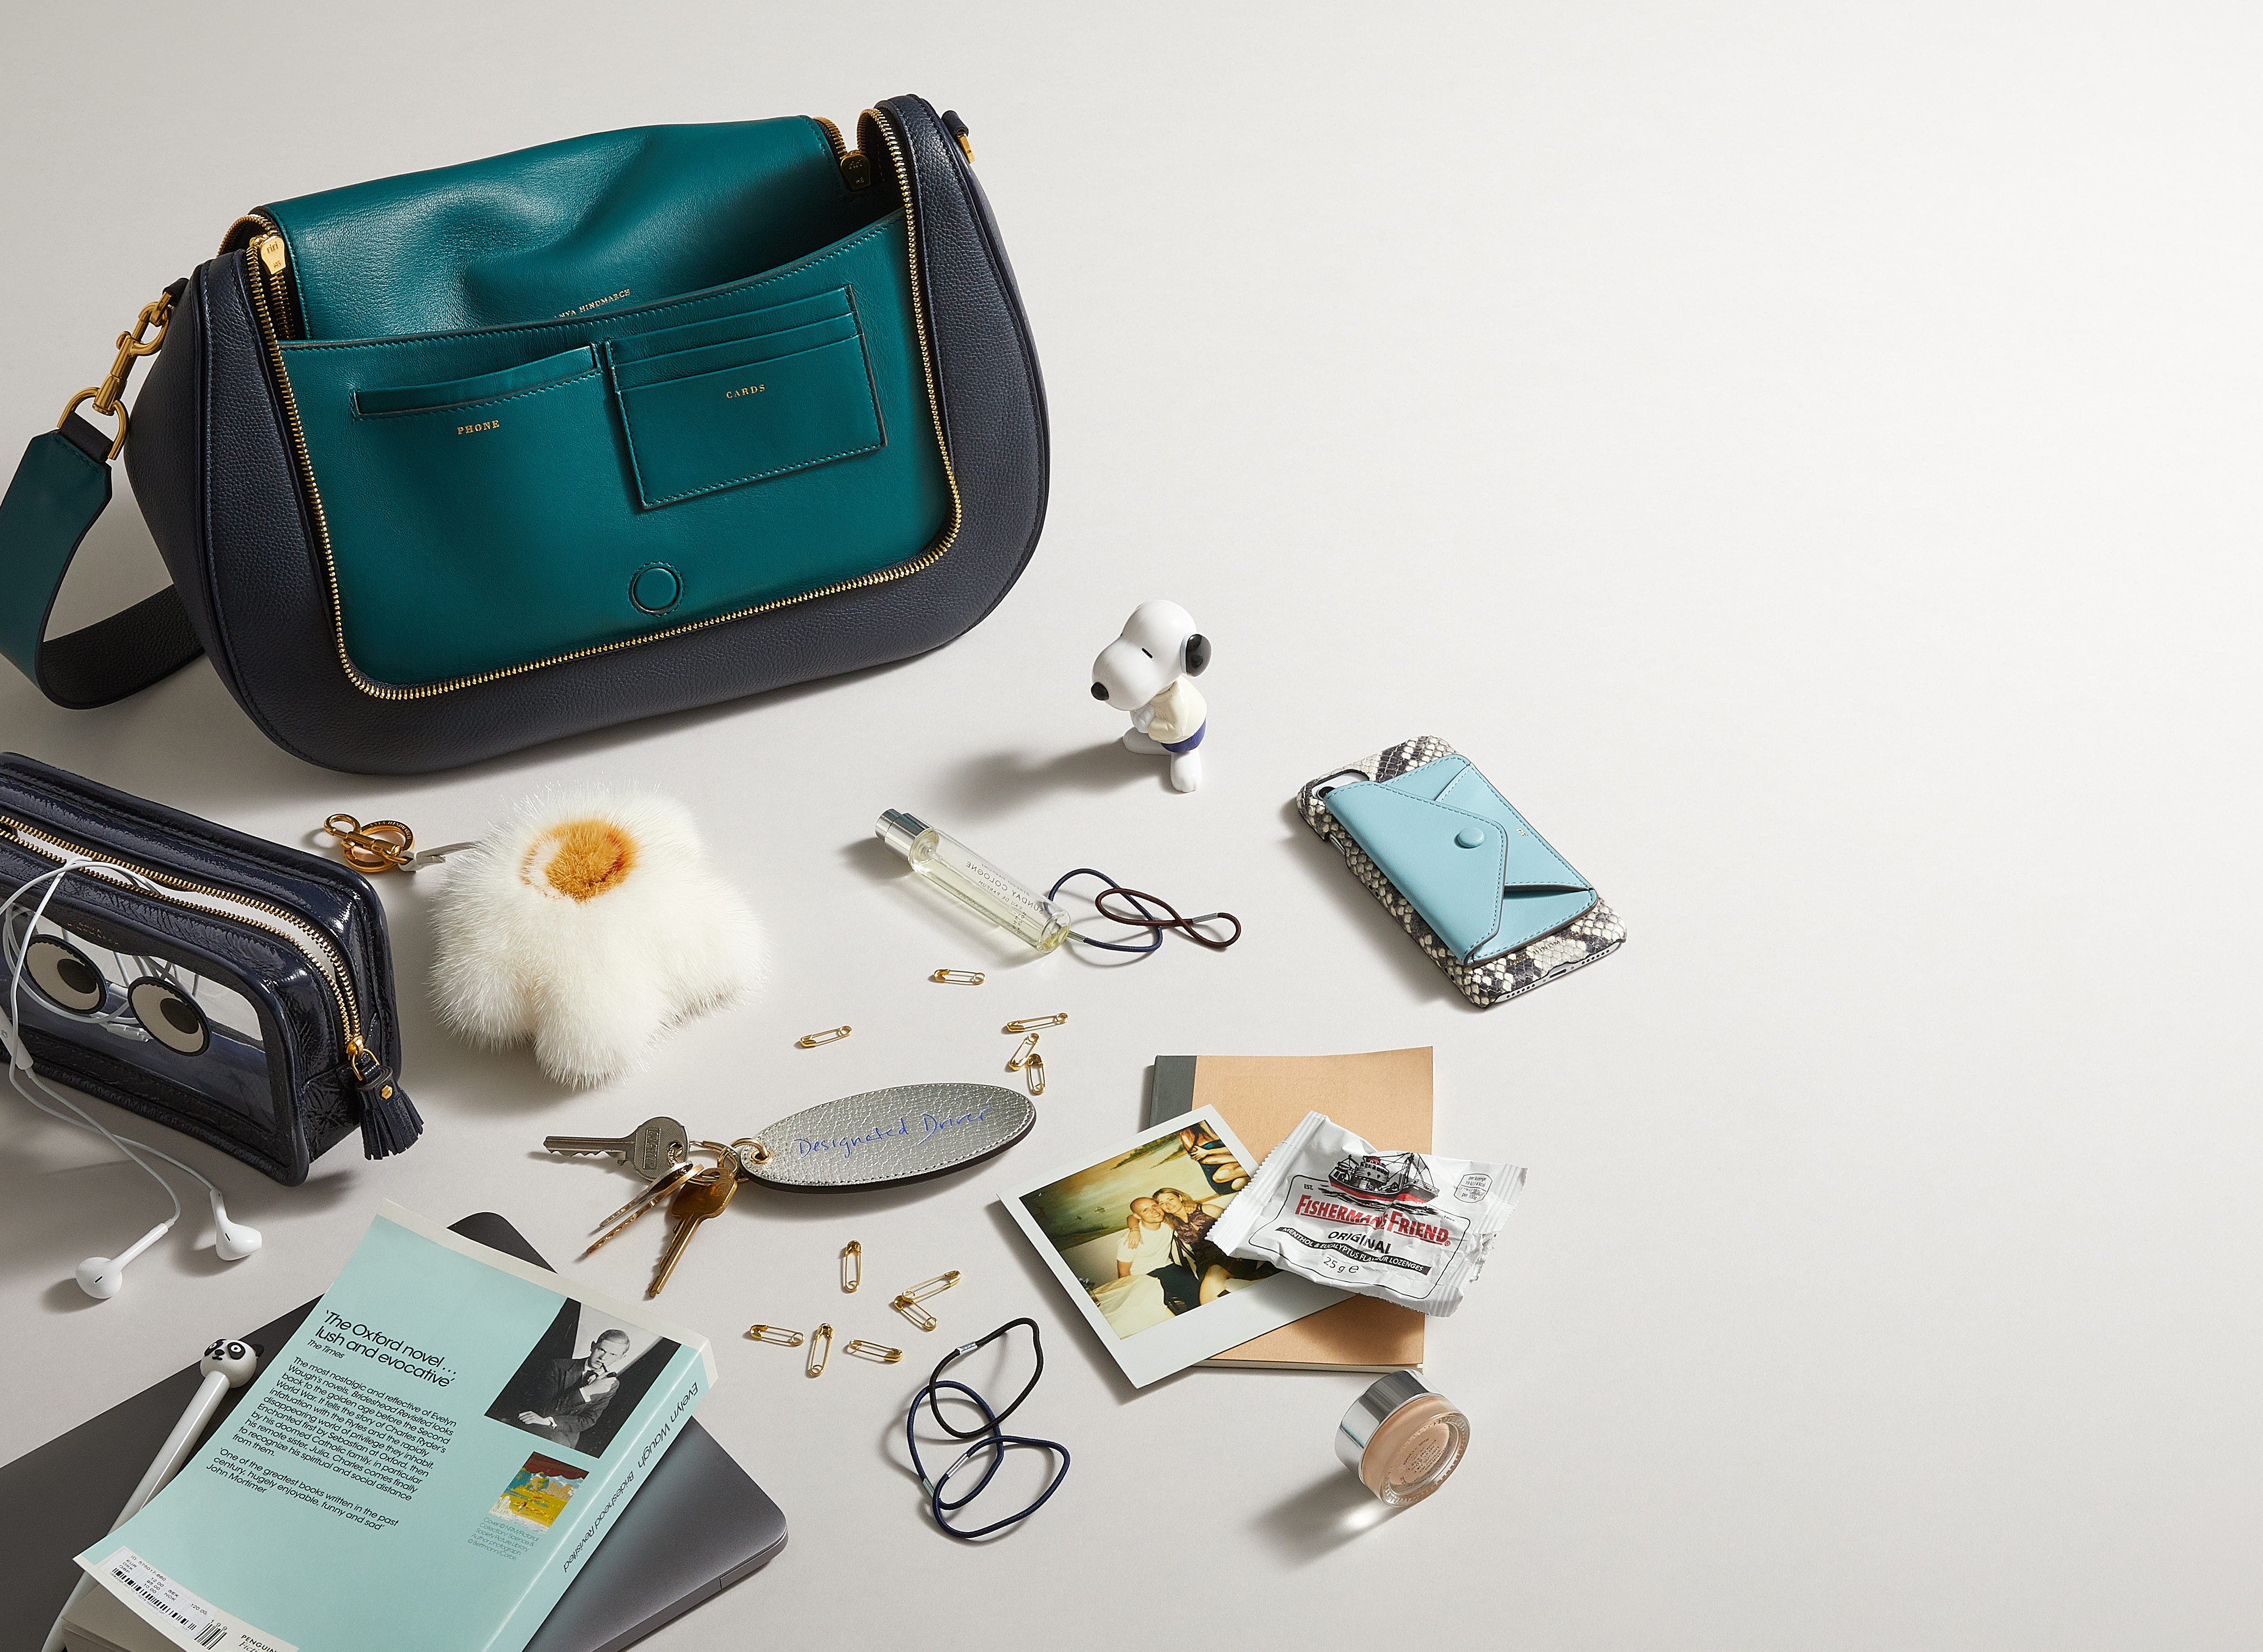 Anya Hindmarch's Bags That Work.